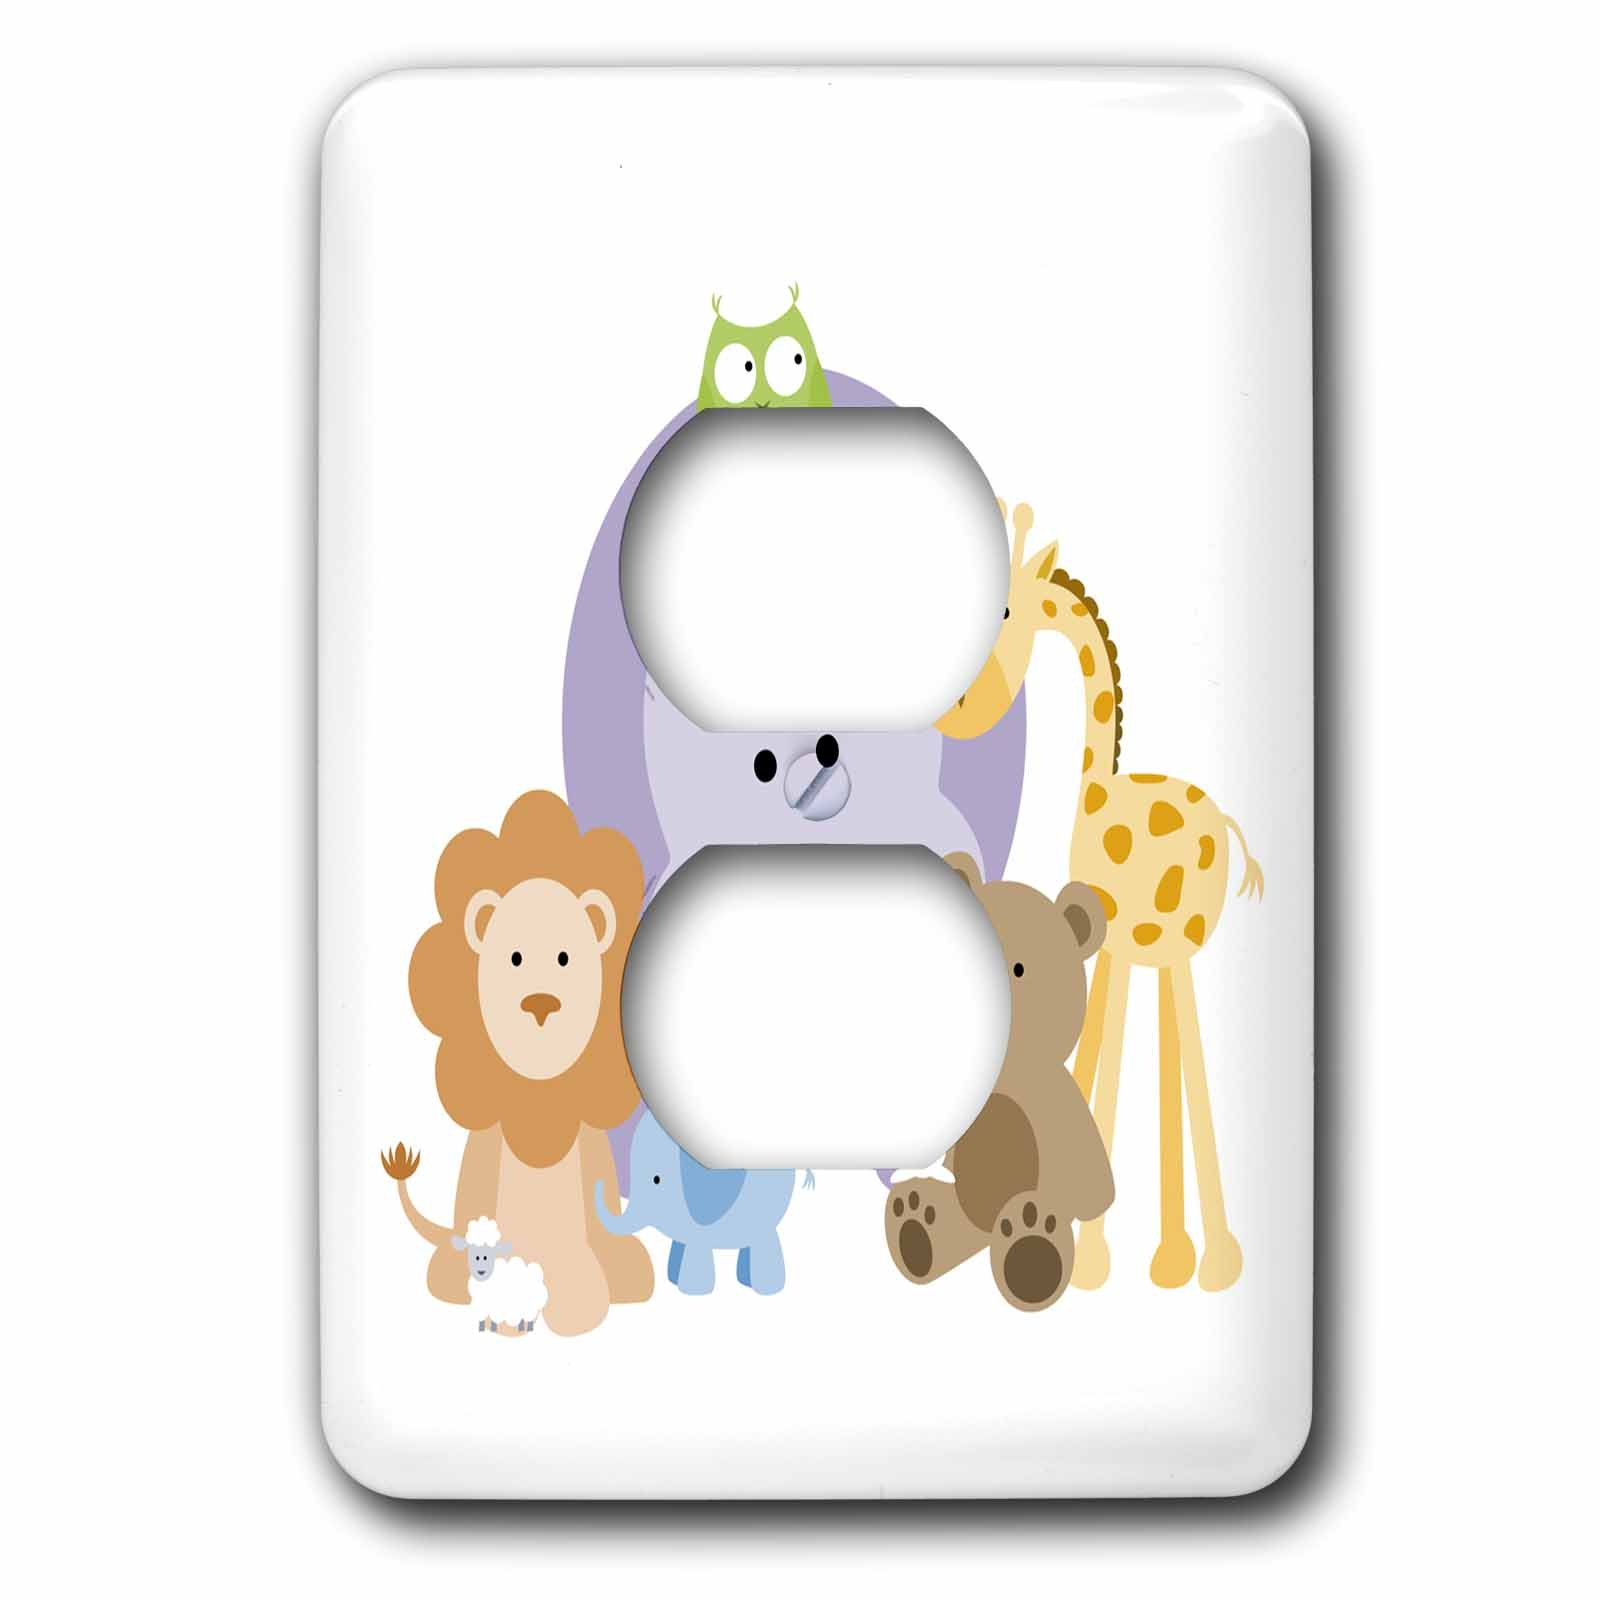 3dRose lsp_224212_6 Family Of Cute Zoo Animals 2 Plug Outlet Cover